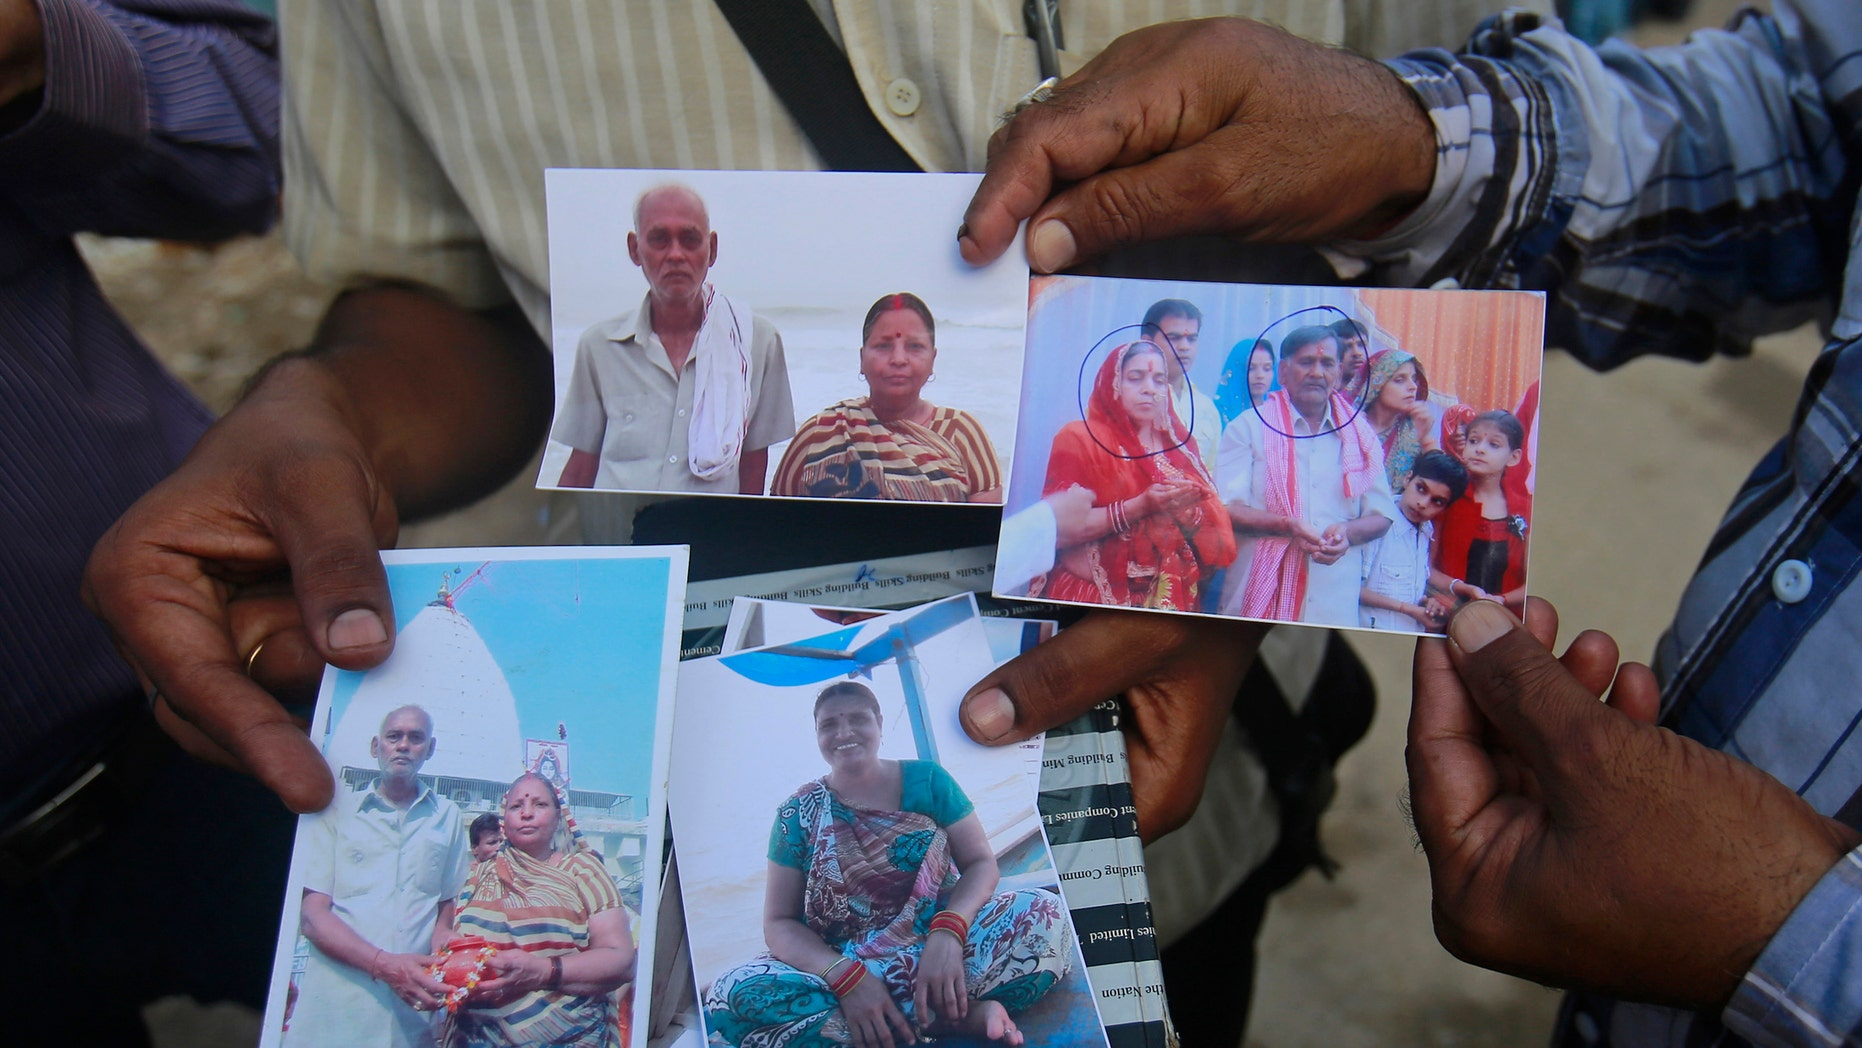 Relatives of missing people, affected by the flash floods and landslides, display their photographs outside the Indian Air Force base in Dehradun, in the Himalayan state of Uttarakhand June 26, 2013.